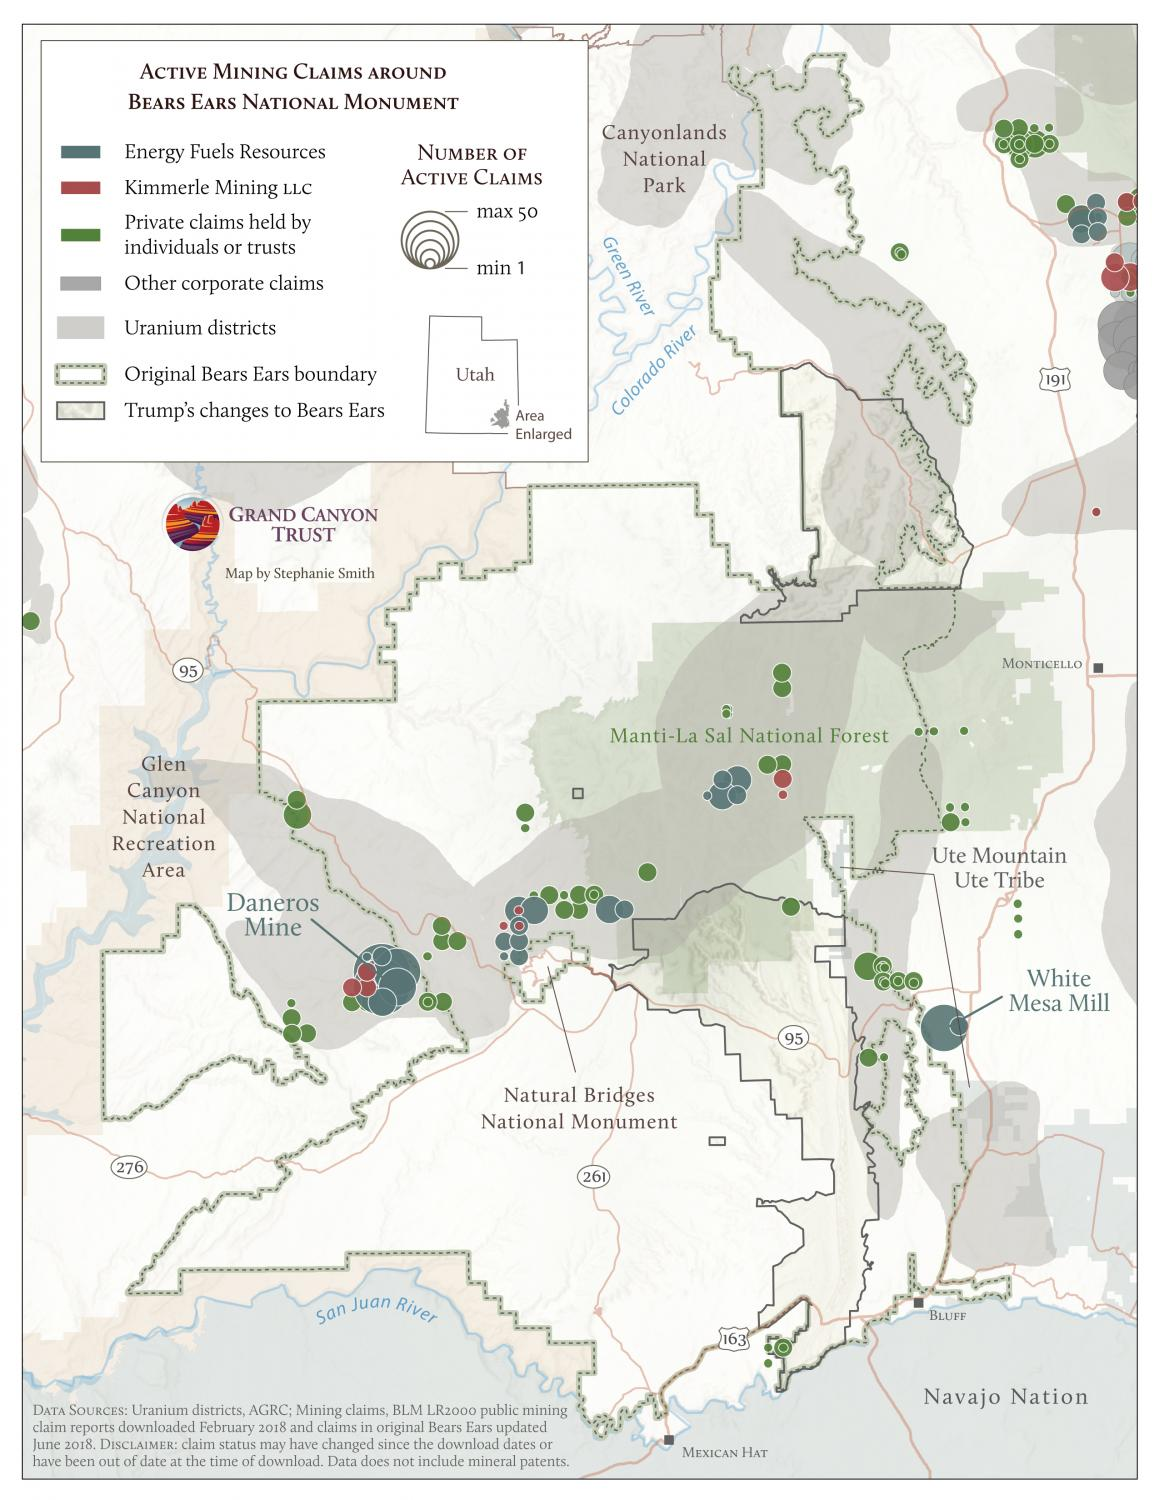 Map of active mining claims around Bears Ears with ownership data